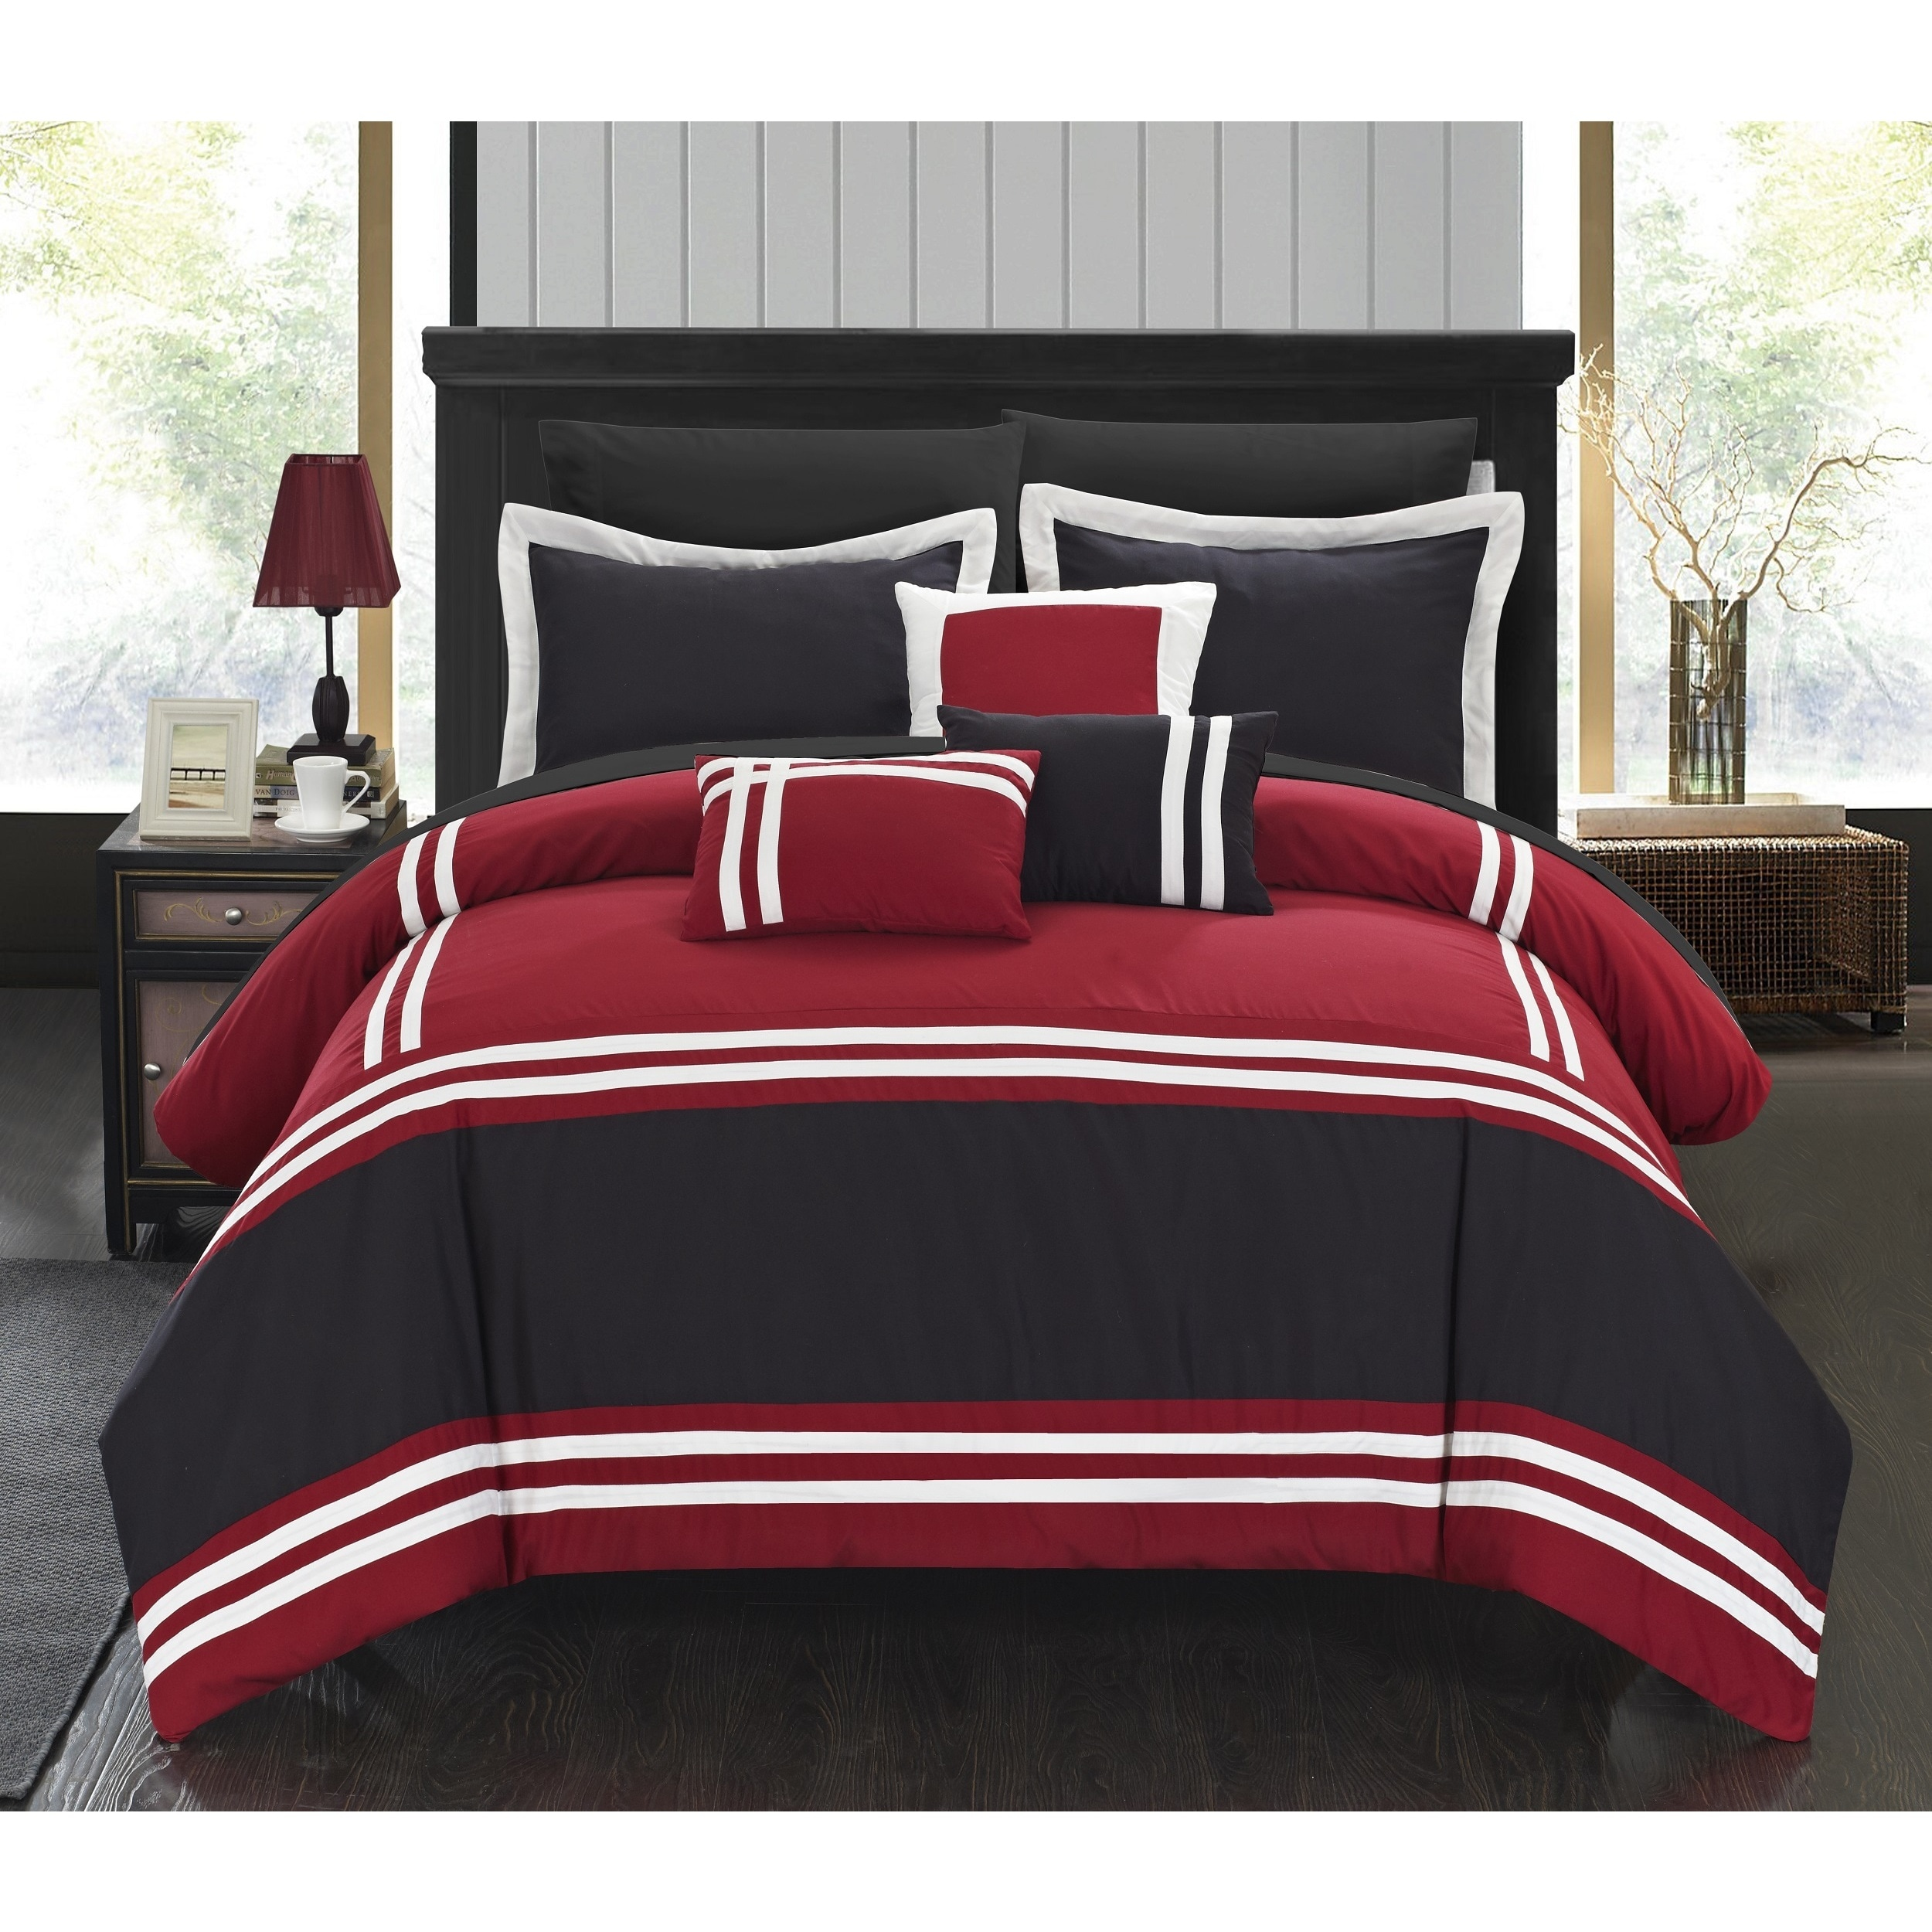 Copper Grove Norreskoven Red And Black Oversized 10 Piece Bed In A Bag With Sheet Set On Free Shipping Today 20223302